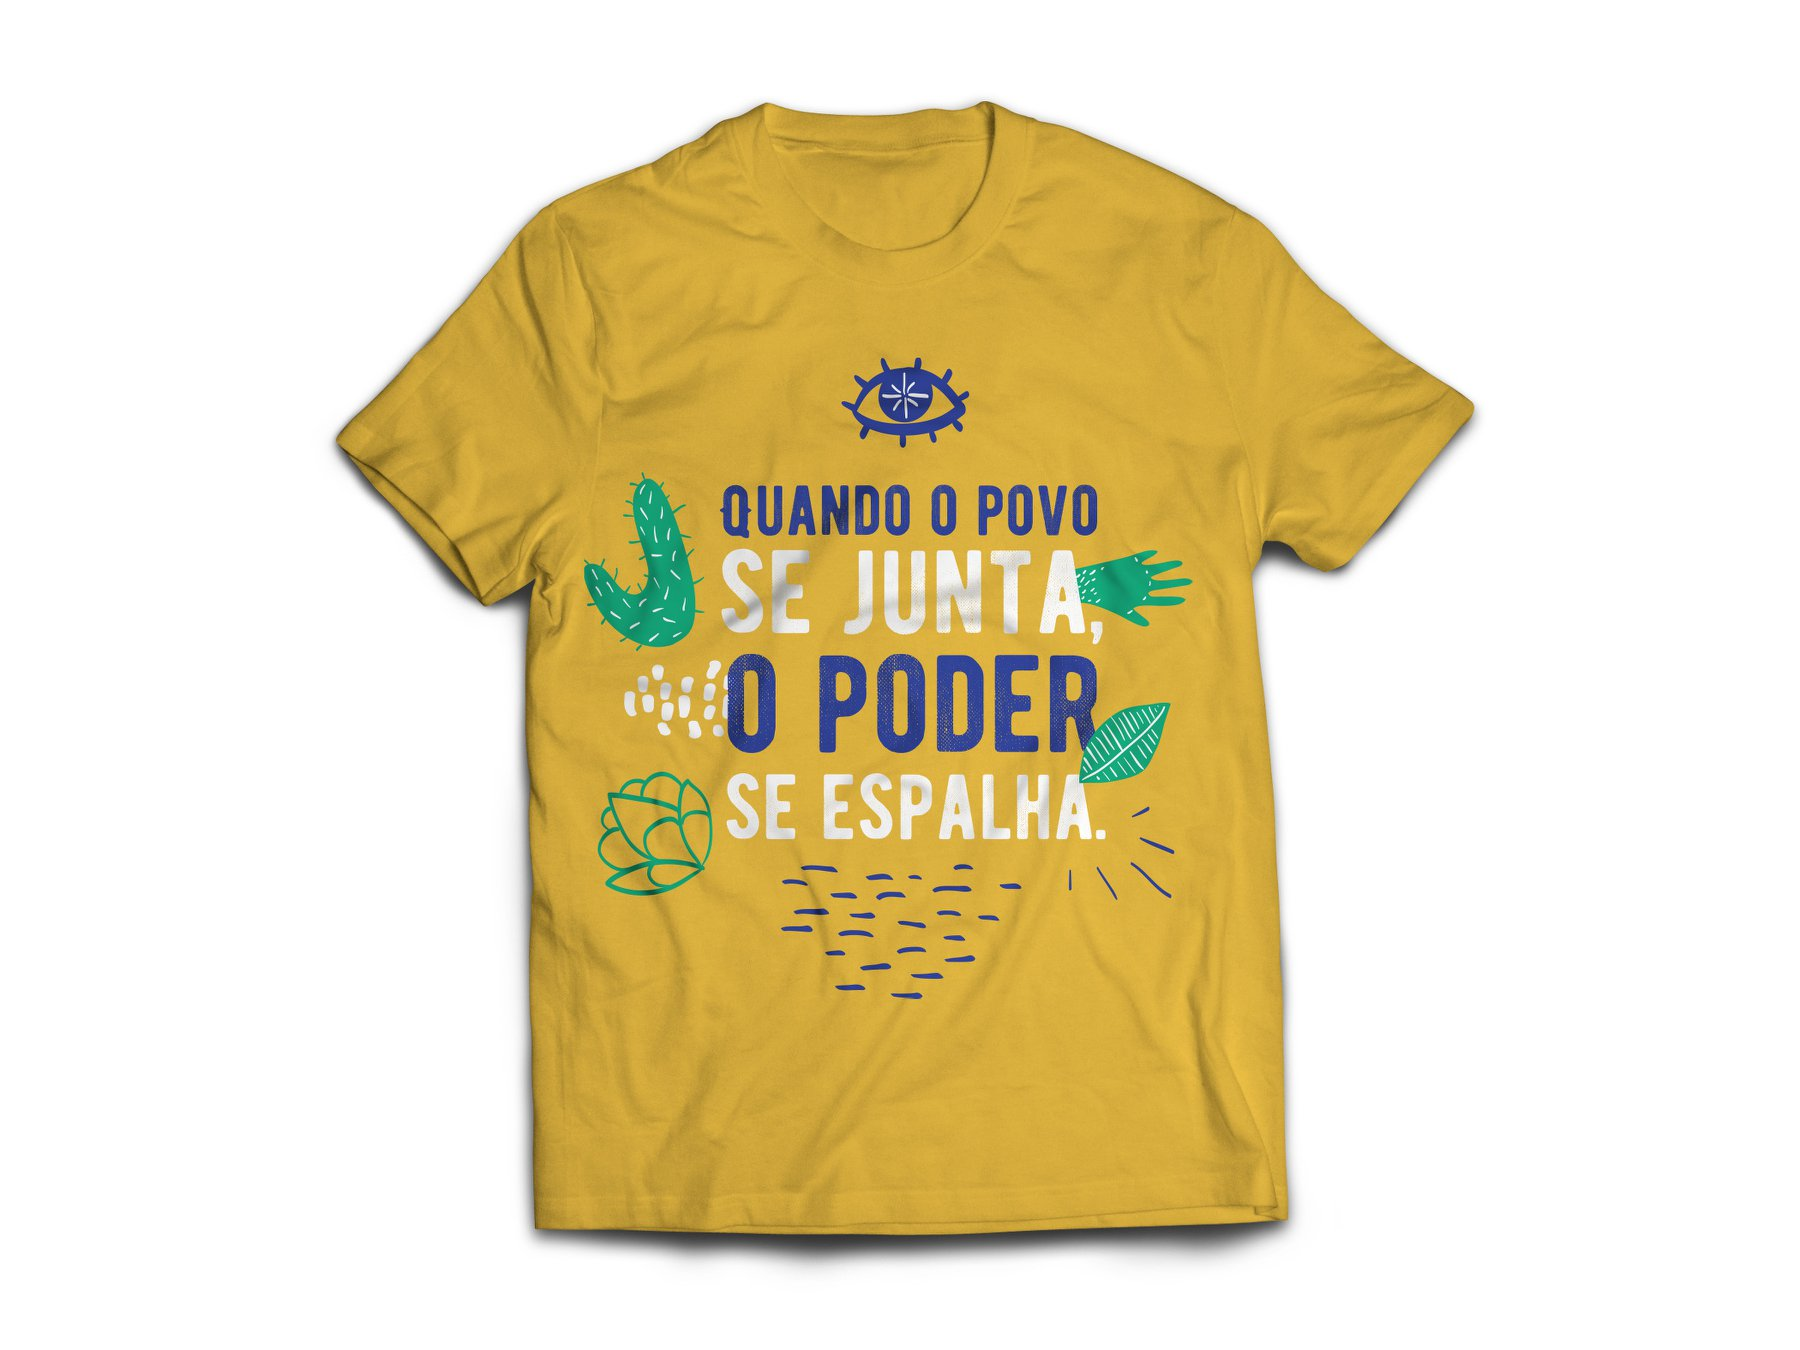 Quando o povo se junta, o poder se espalha (when the people gather, power spreads) tshirt brazil